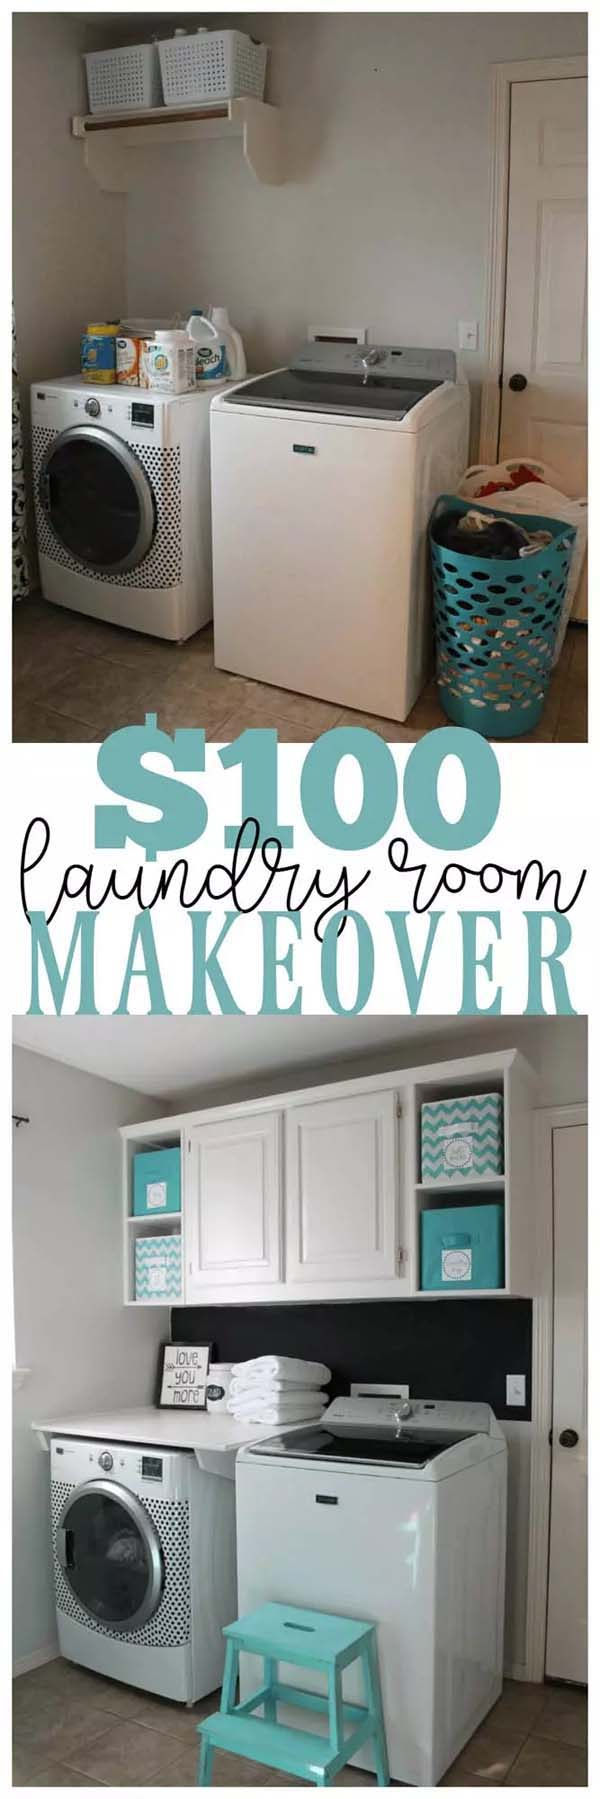 White Cabinets with Turquoise Boxes #laundryroom #makeover #homedecorimage